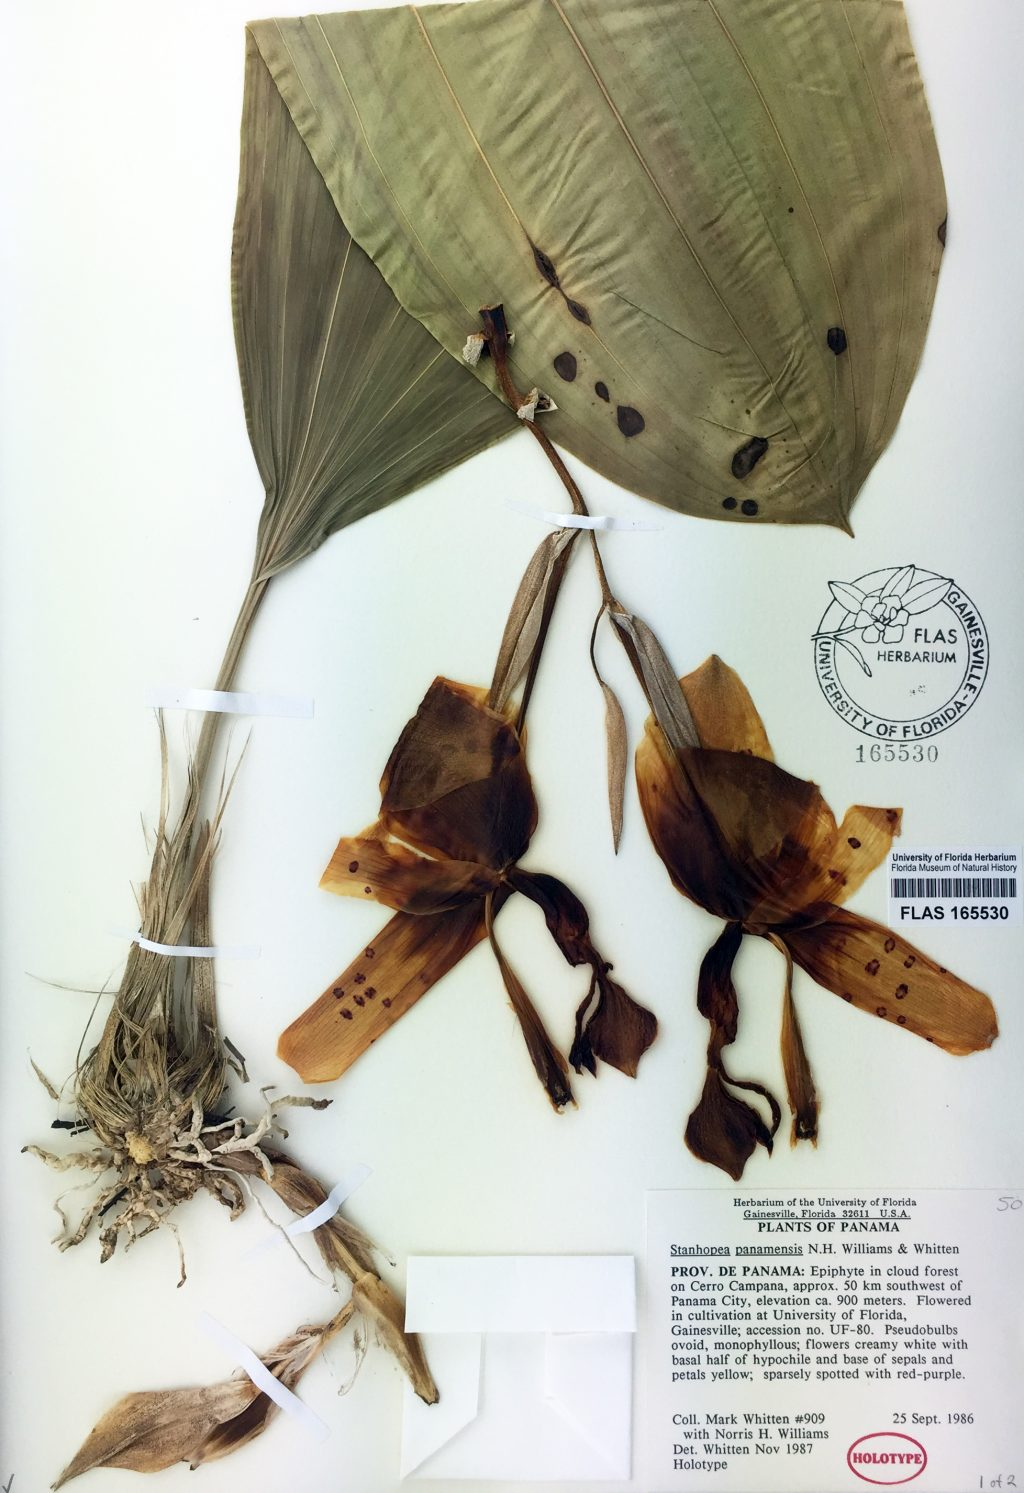 dried herbarium specimen of orchid from Panama